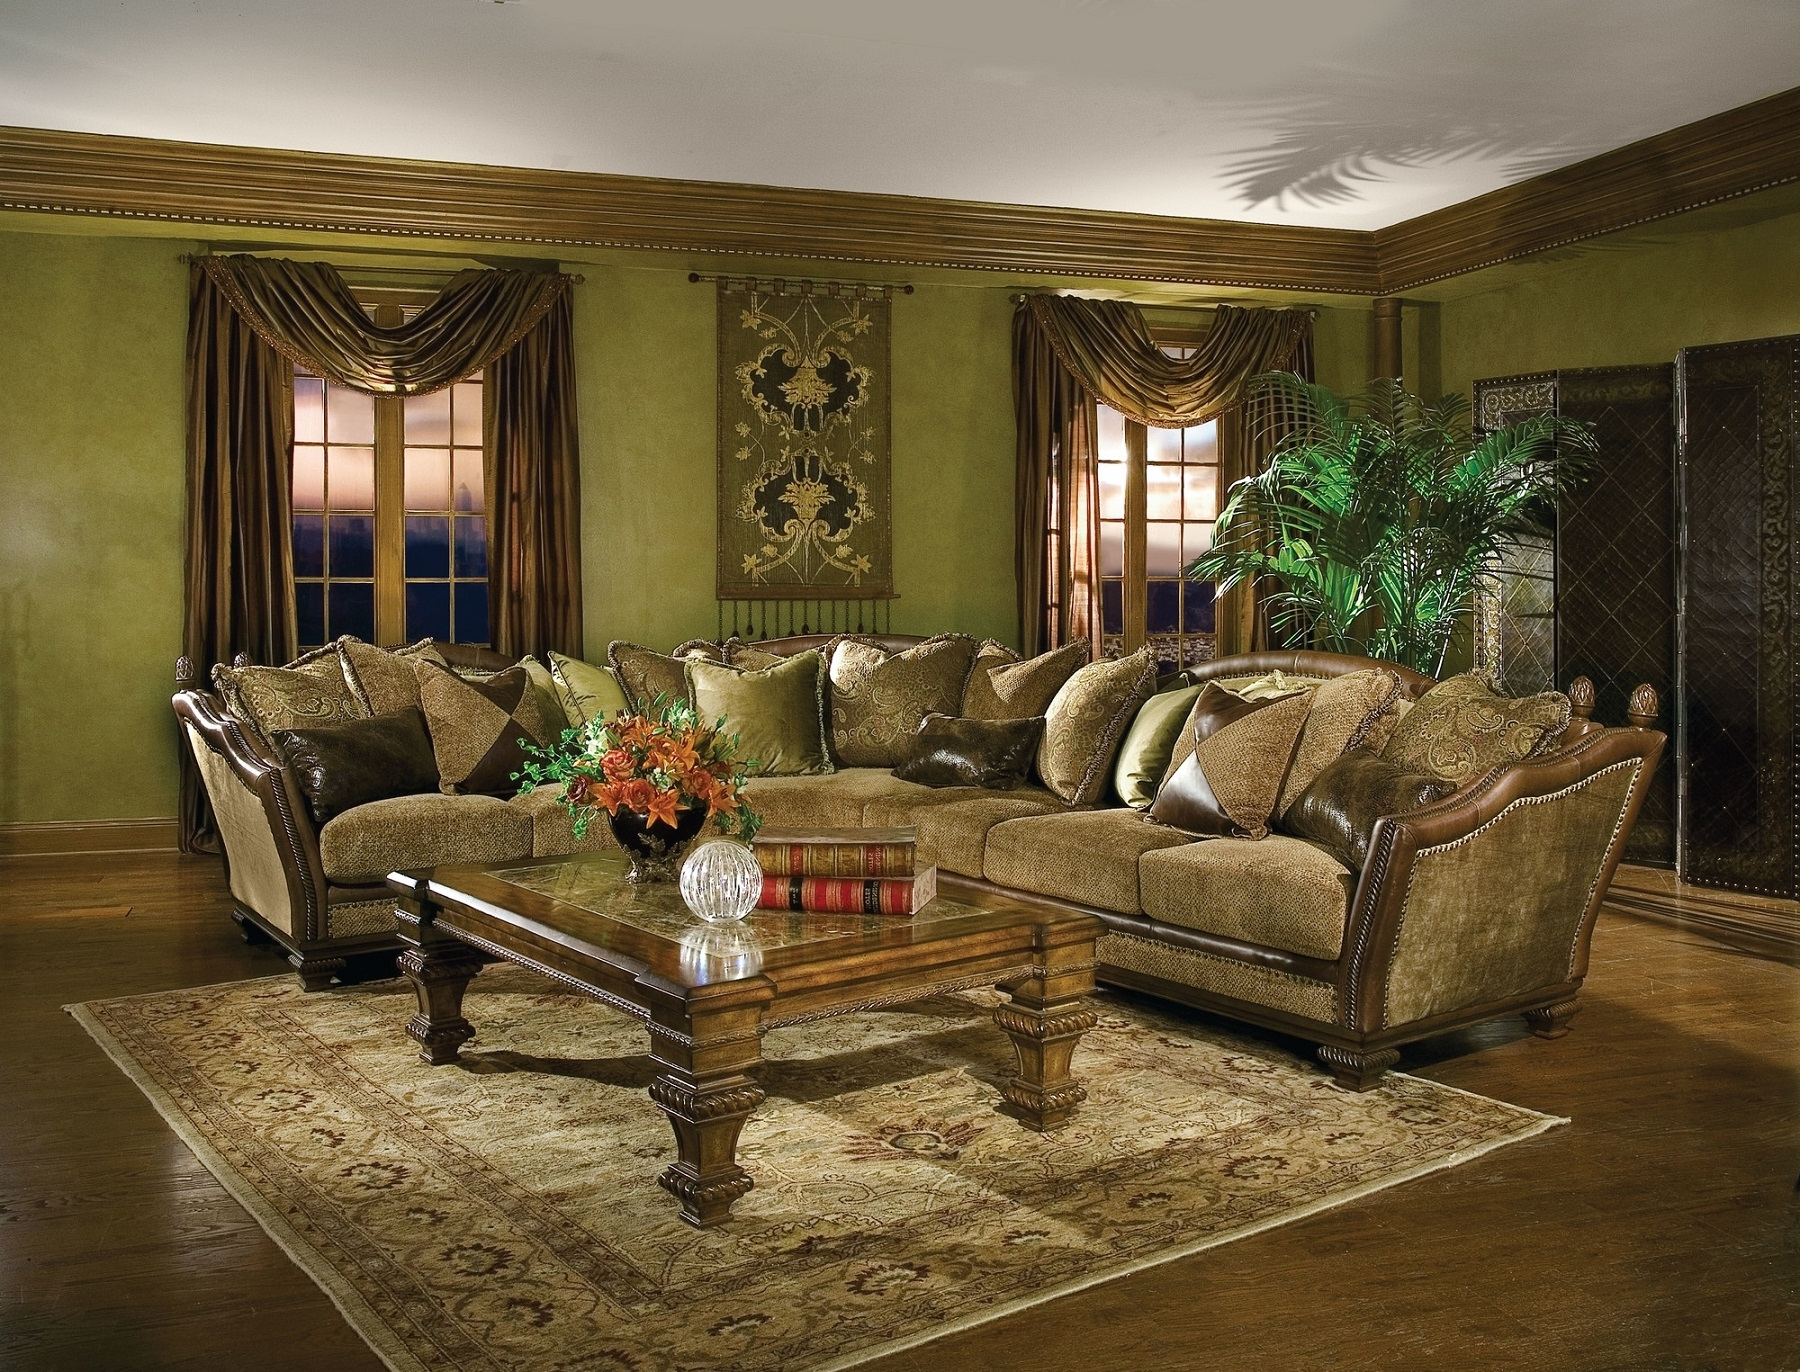 2018 Luxury Sectional Sofas Throughout Amazing Luxury Sectional Sofas 84 About Remodel Modern Sofa (View 2 of 15)